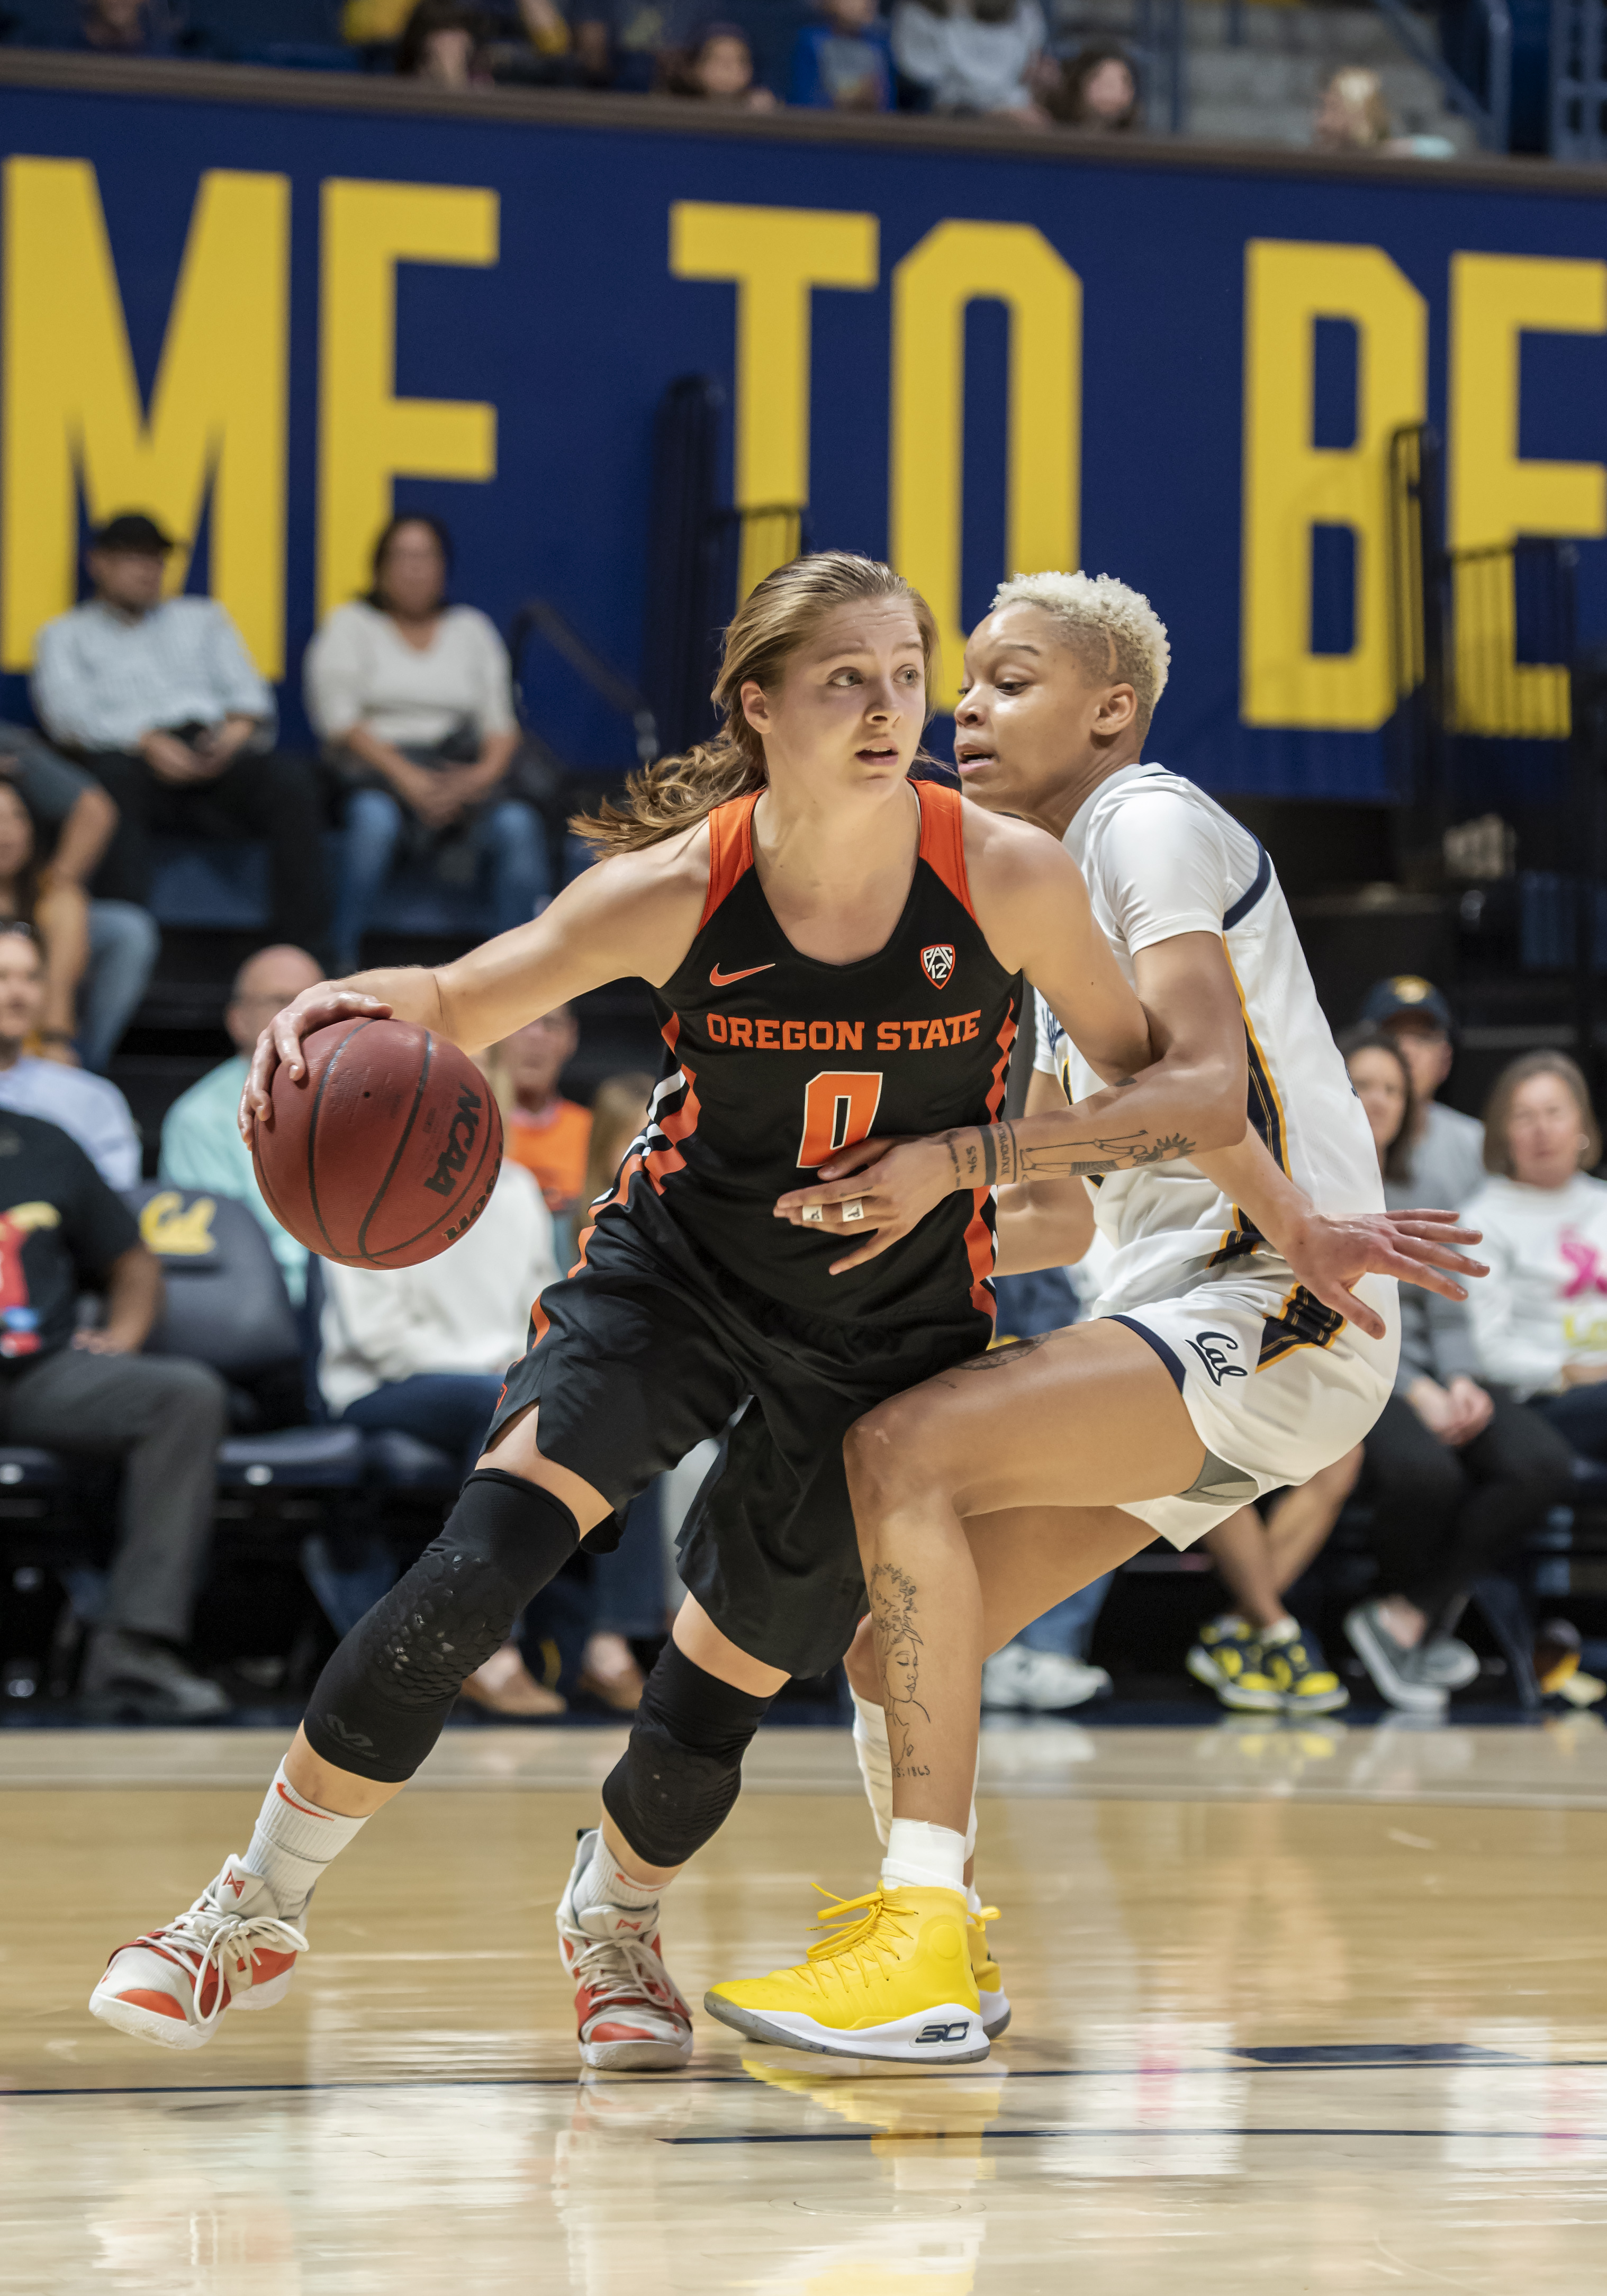 COLLEGE BASKETBALL: FEB 23 Women's Oregon State at Cal